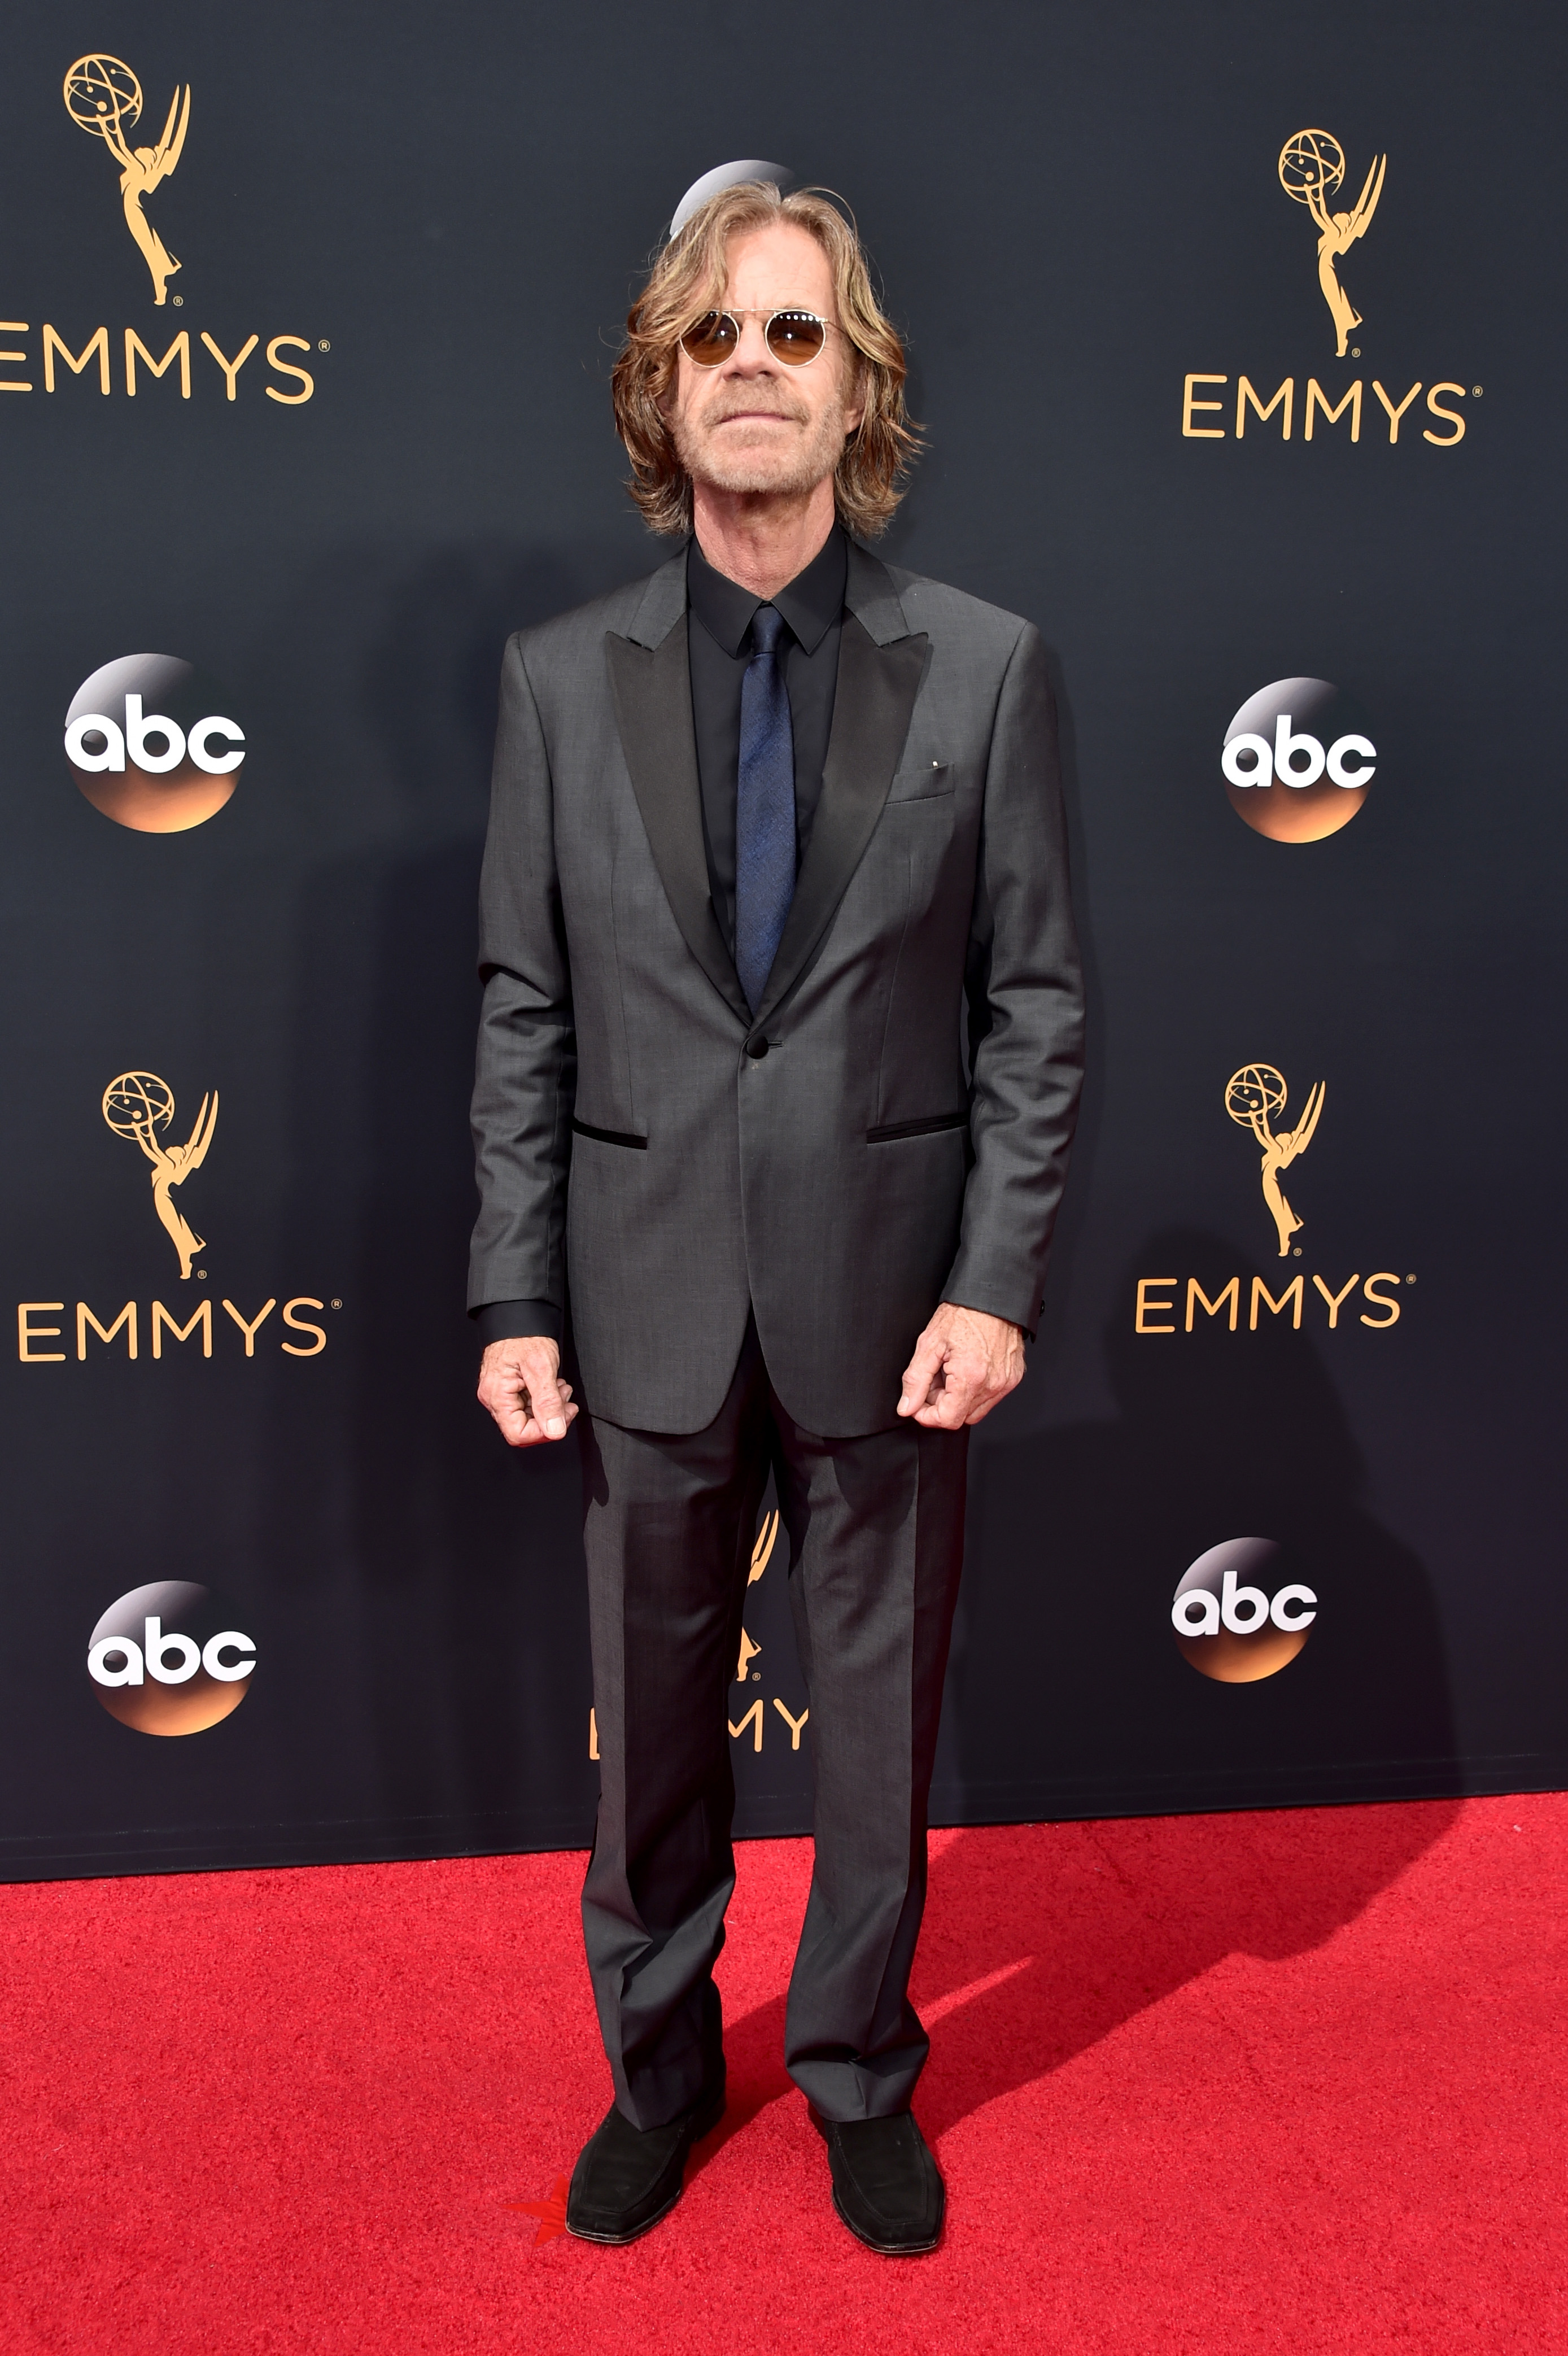 William H. Macy arrives at the 68th Annual Primetime Emmy Awards at Microsoft Theater on Sept. 18, 2016 in Los Angeles.